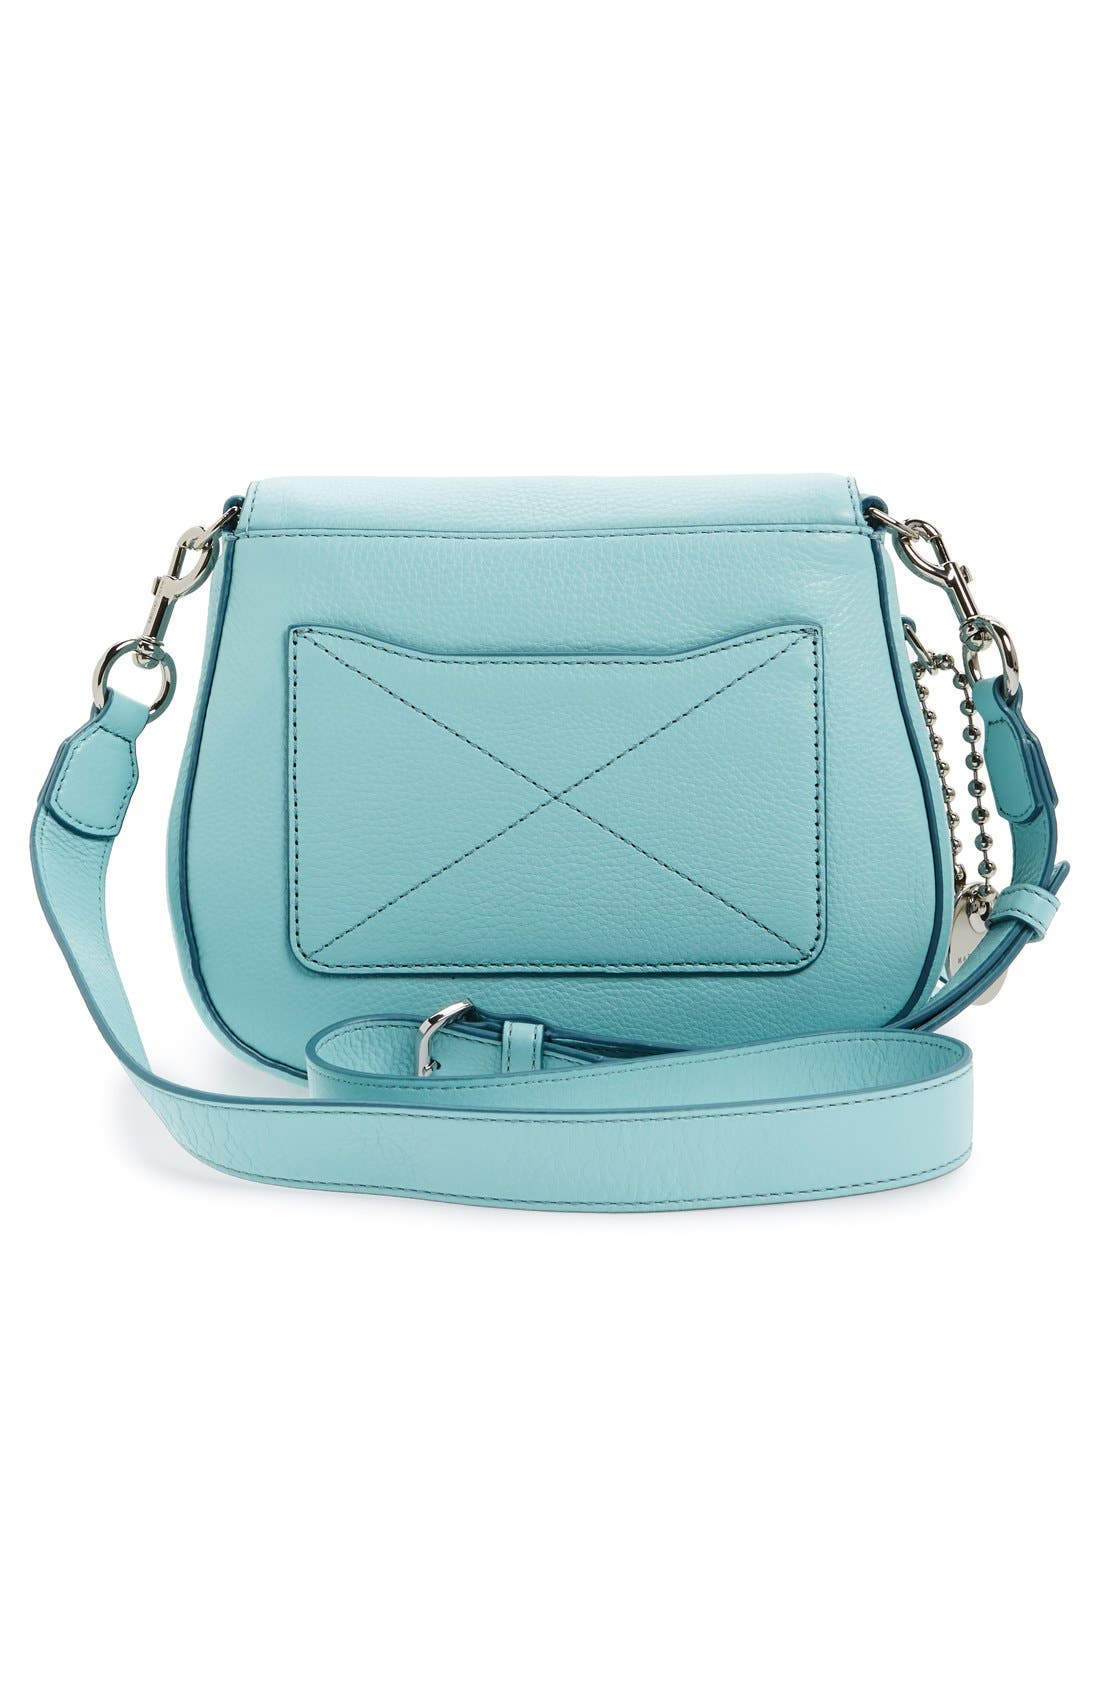 Small Recruit Nomad Pebbled Leather Crossbody Bag,                             Alternate thumbnail 38, color,